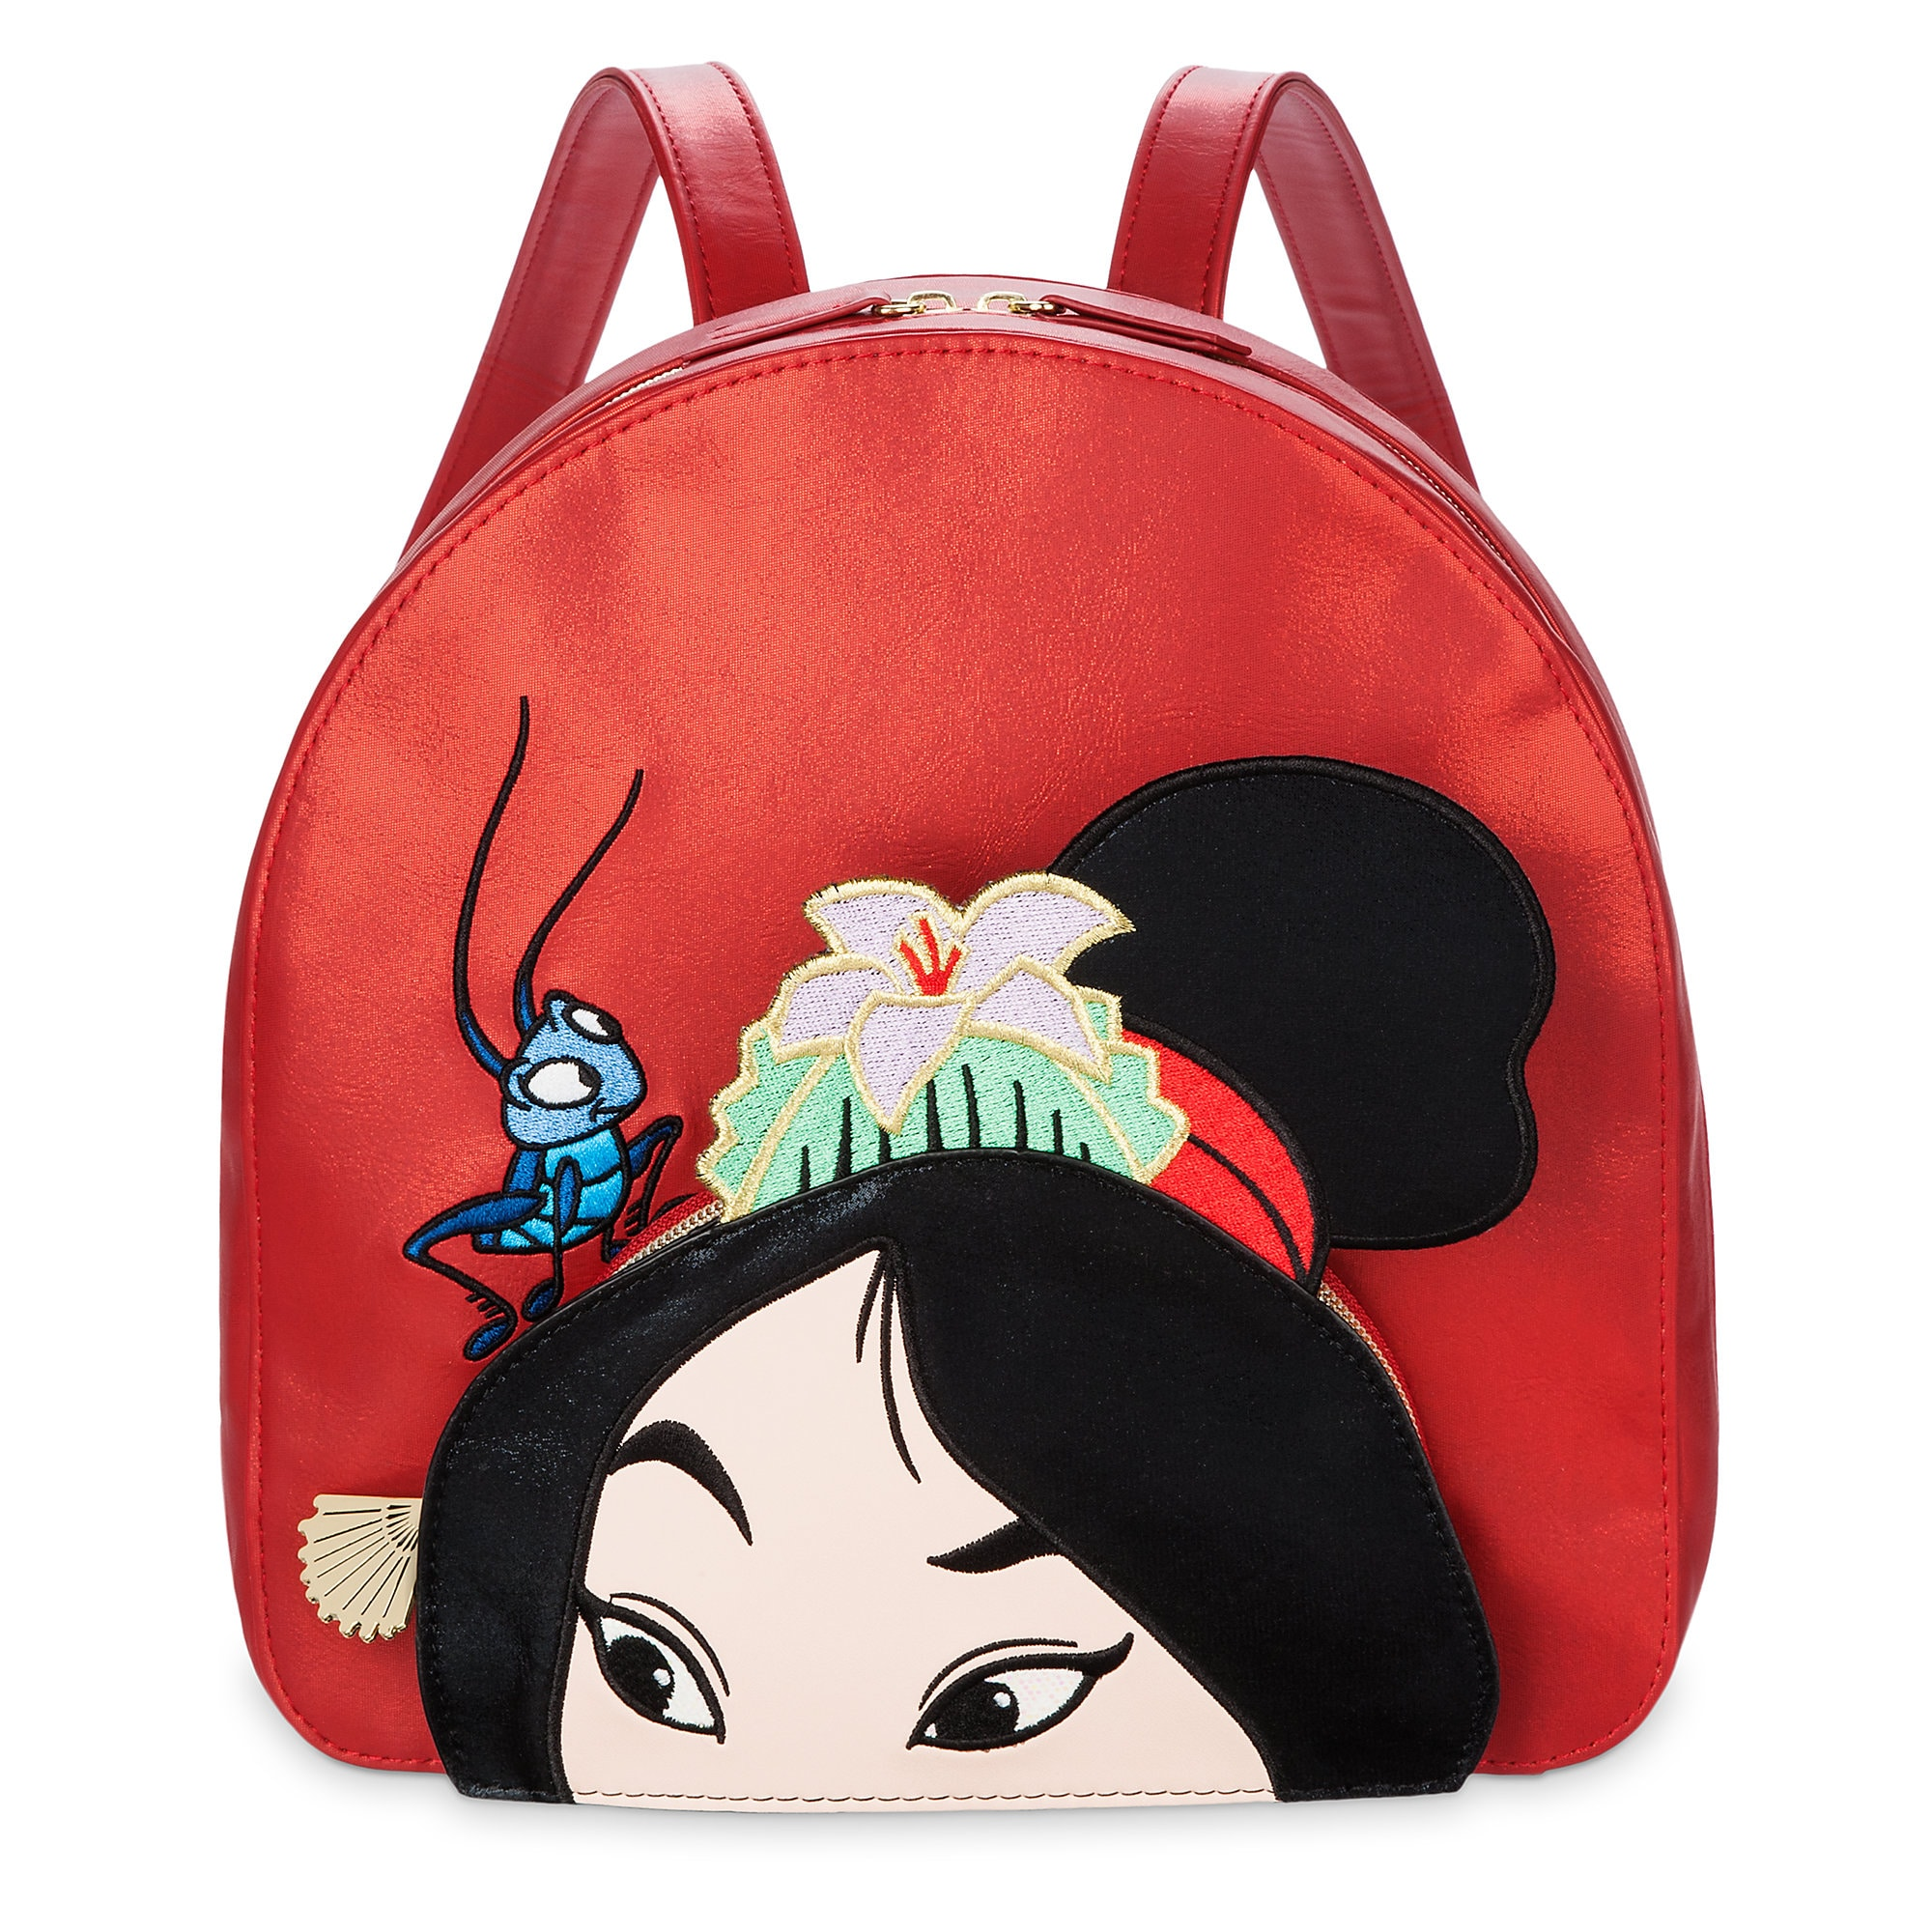 Mulan Fashion Backpack by Danielle Nicole